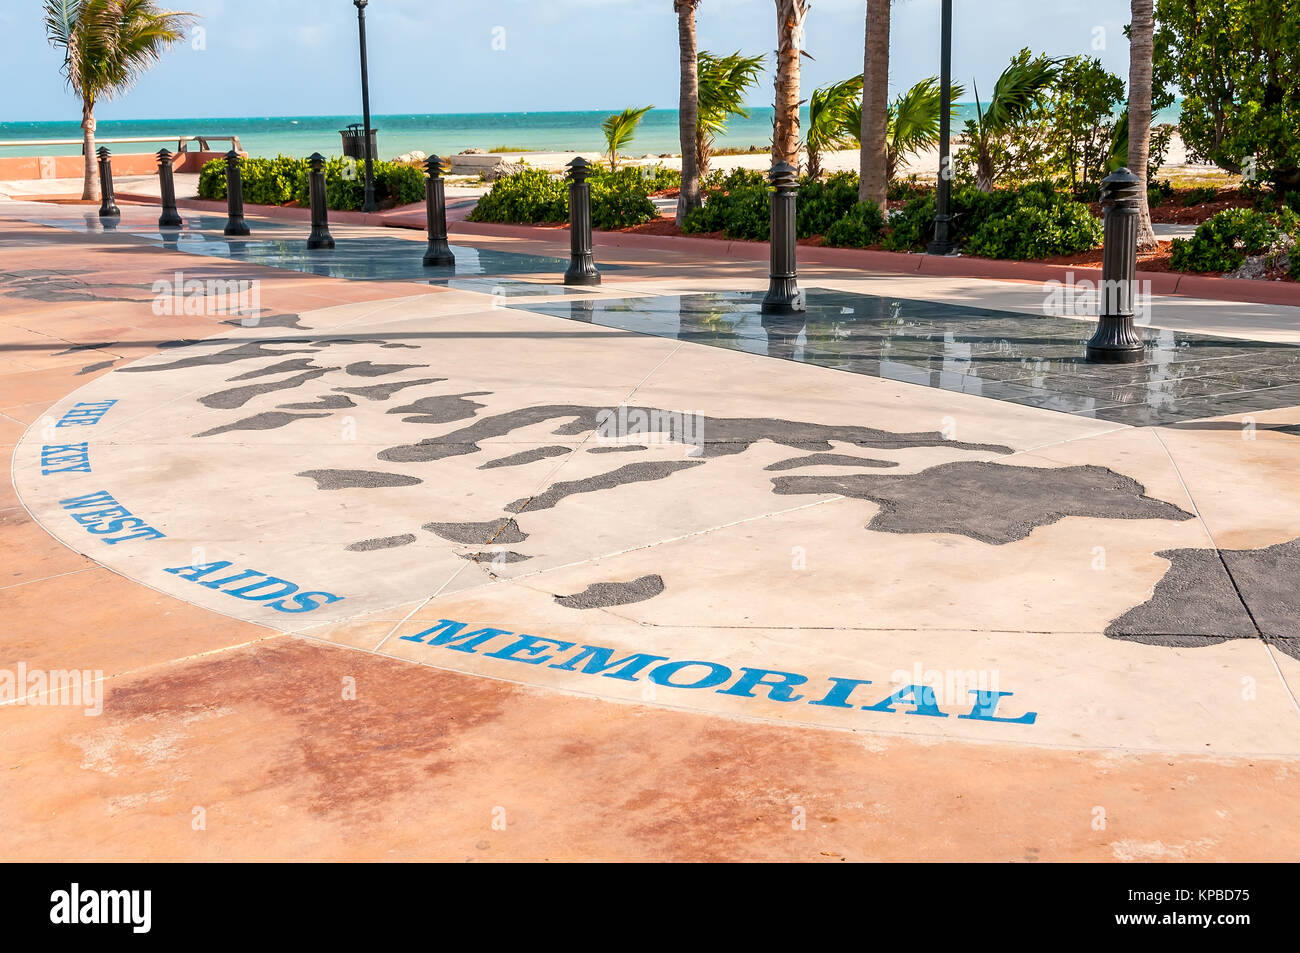 The Key West Aids Memorial at Higgs Memorial Beach, Key West, Florida - Stock Image